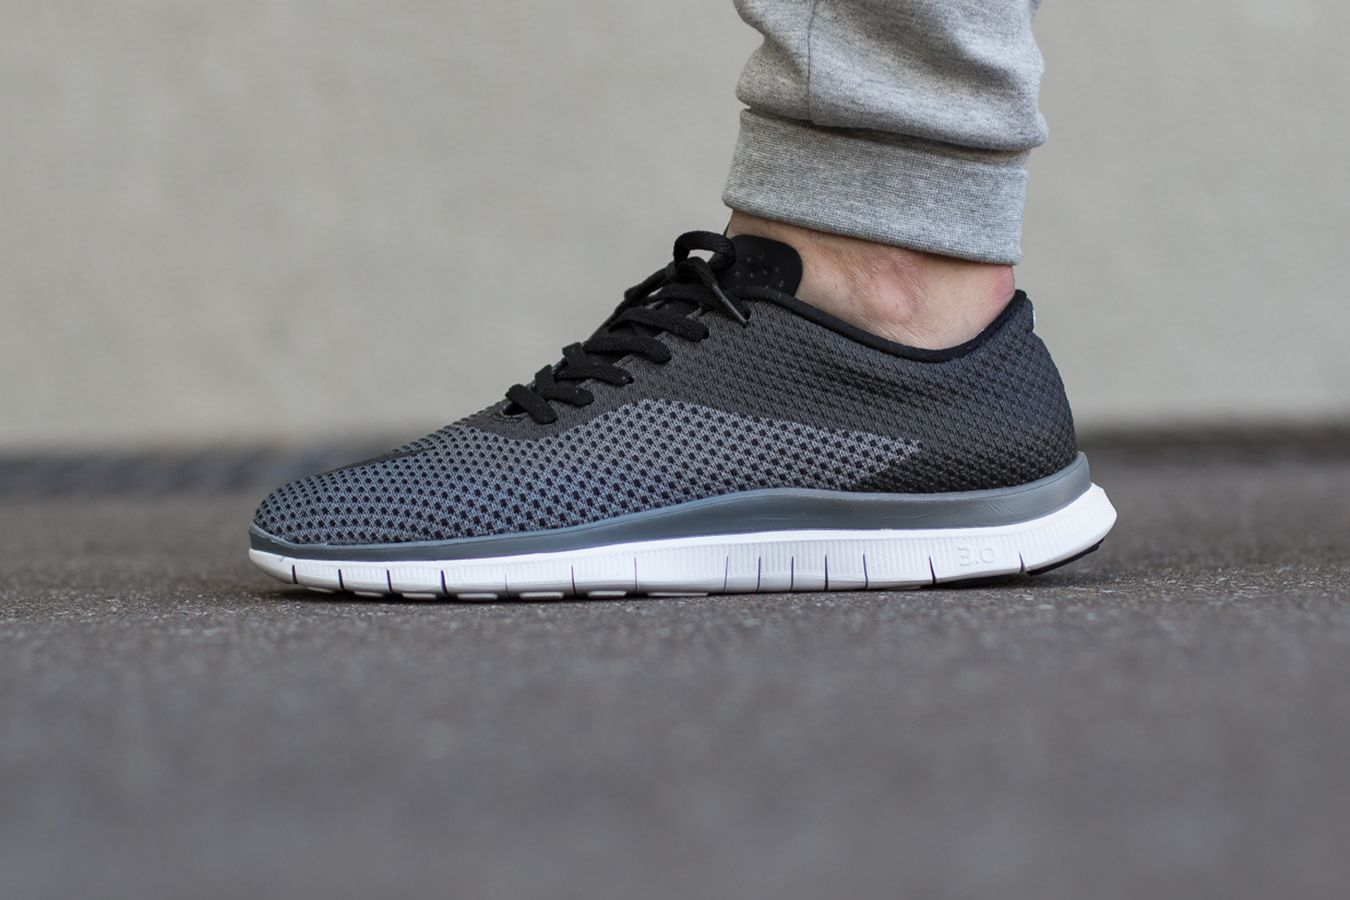 d8c673322d2d Nike Free Hypervenom Low Black Cool Grey  NSW drops a breathable take on  its low-top